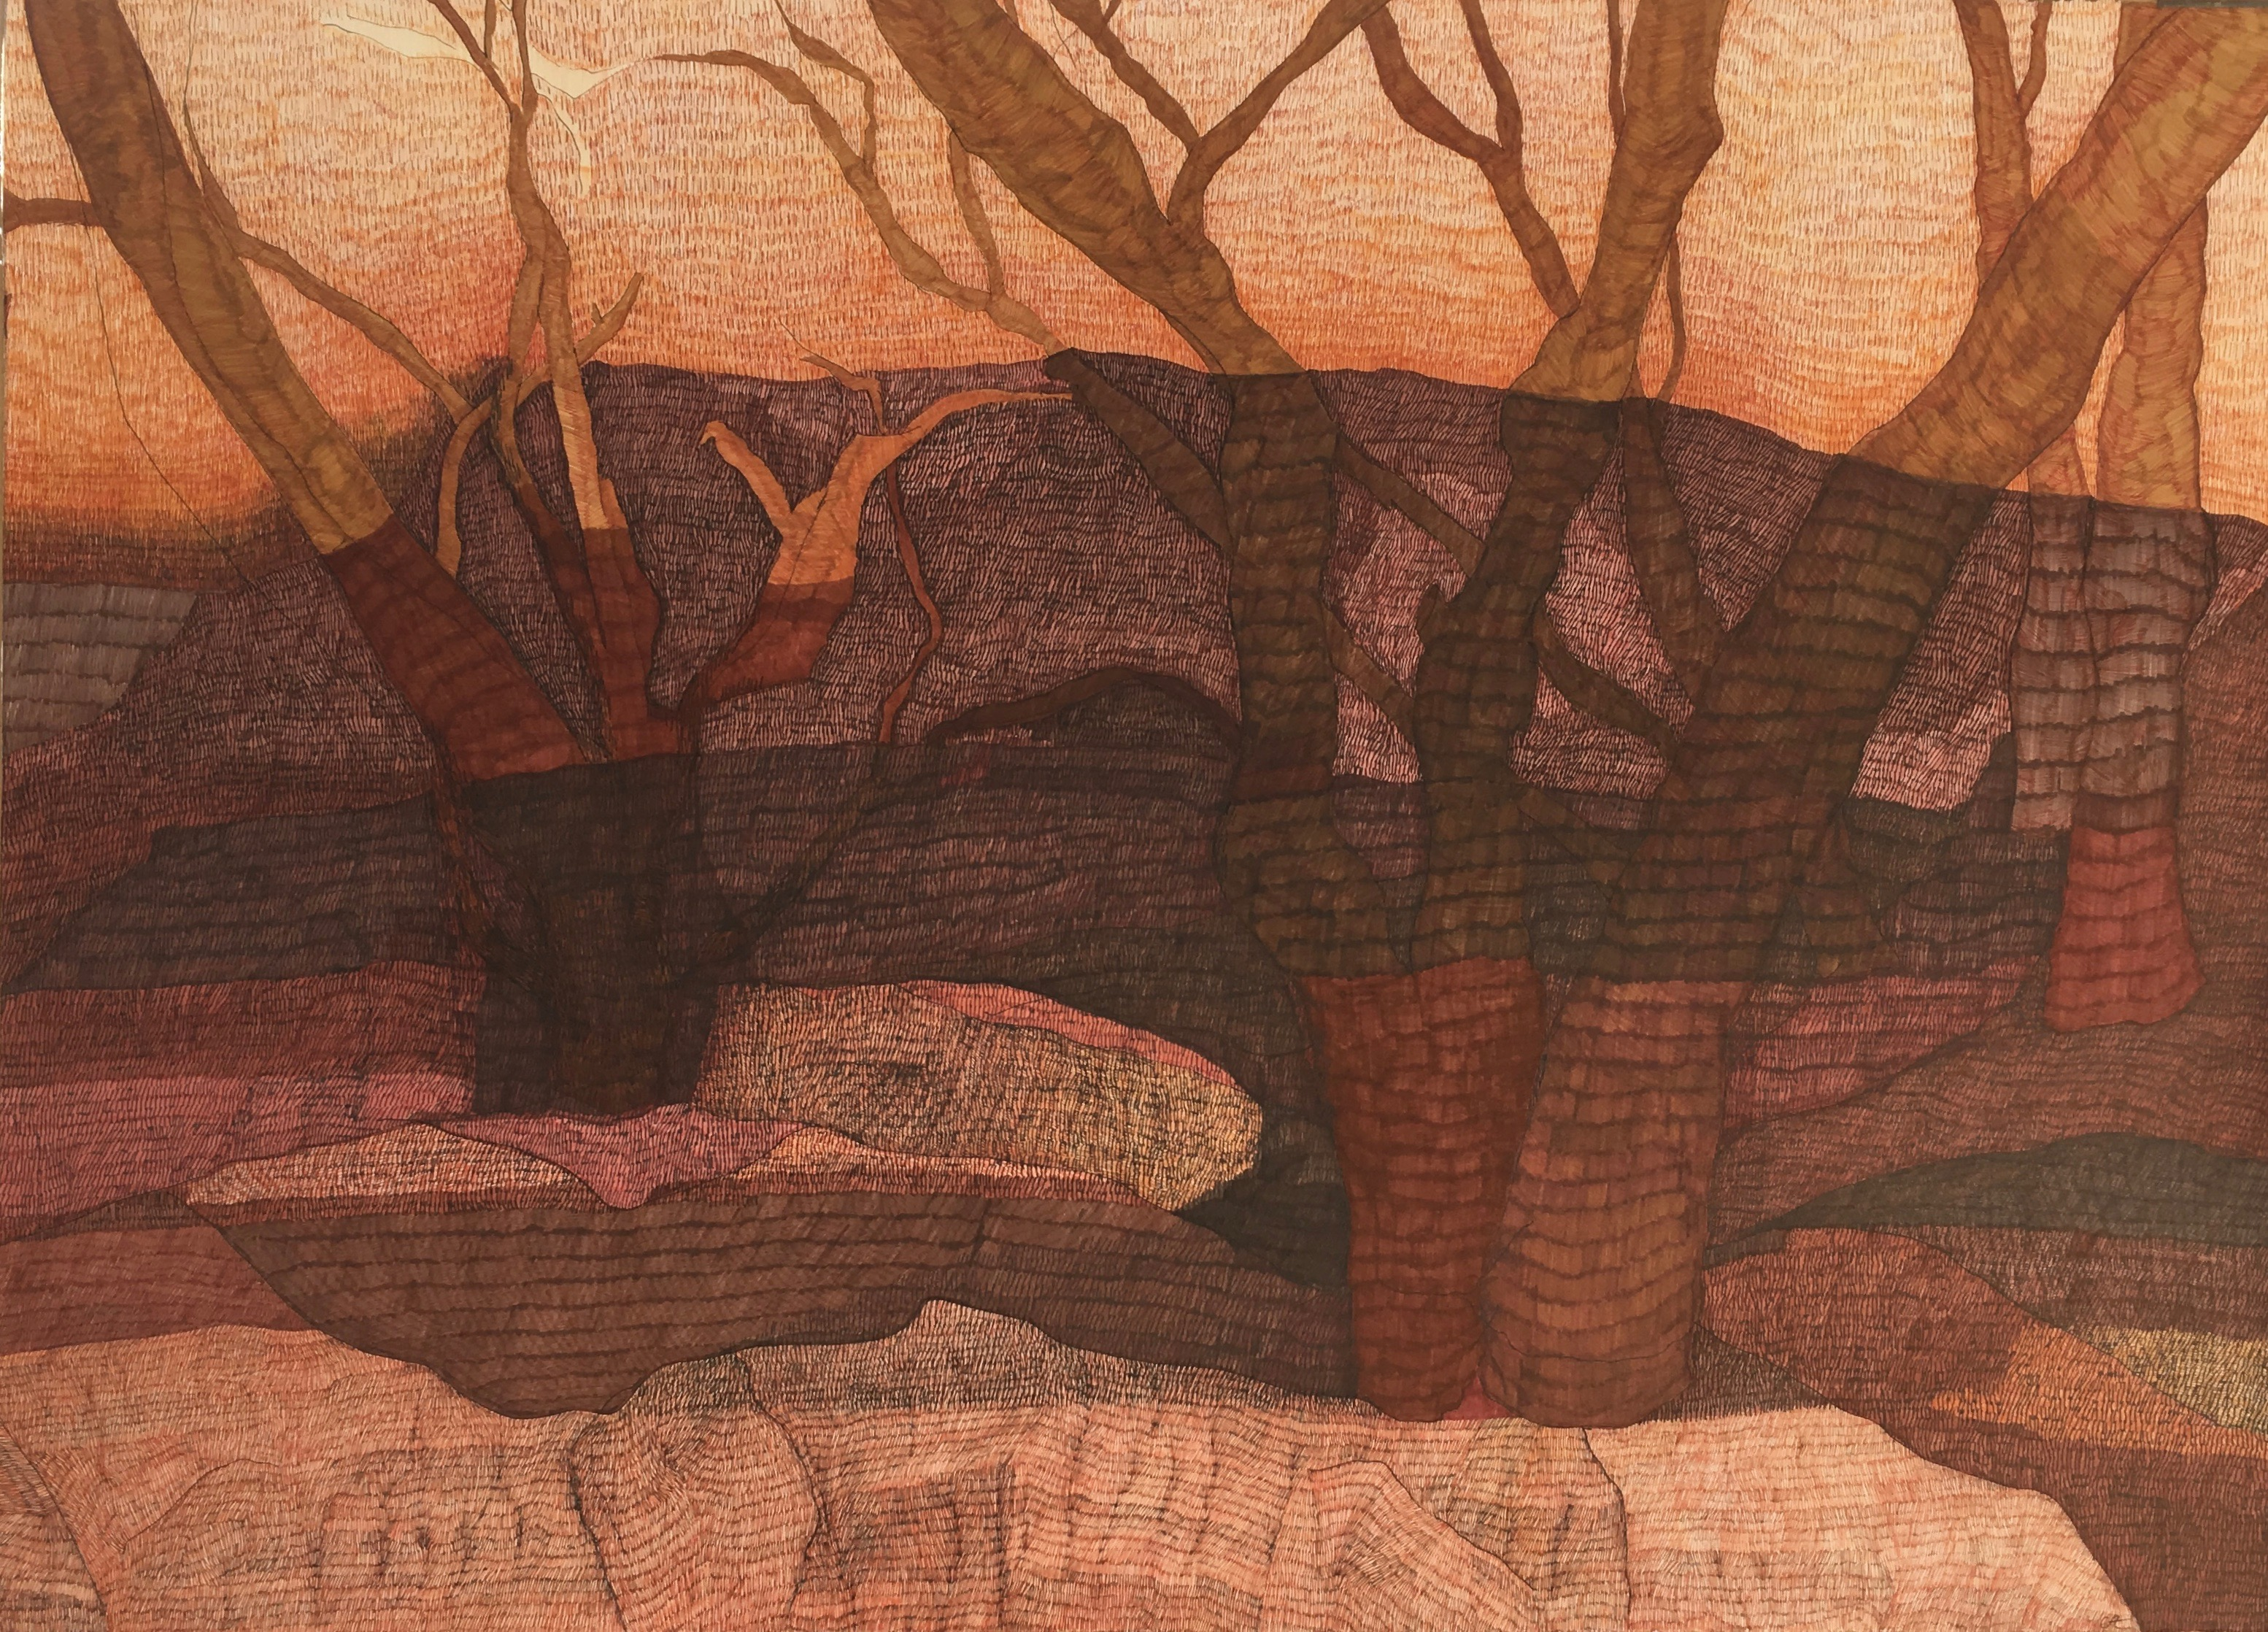 Shadows kings canyon ink on paper, 77cm x 107cm